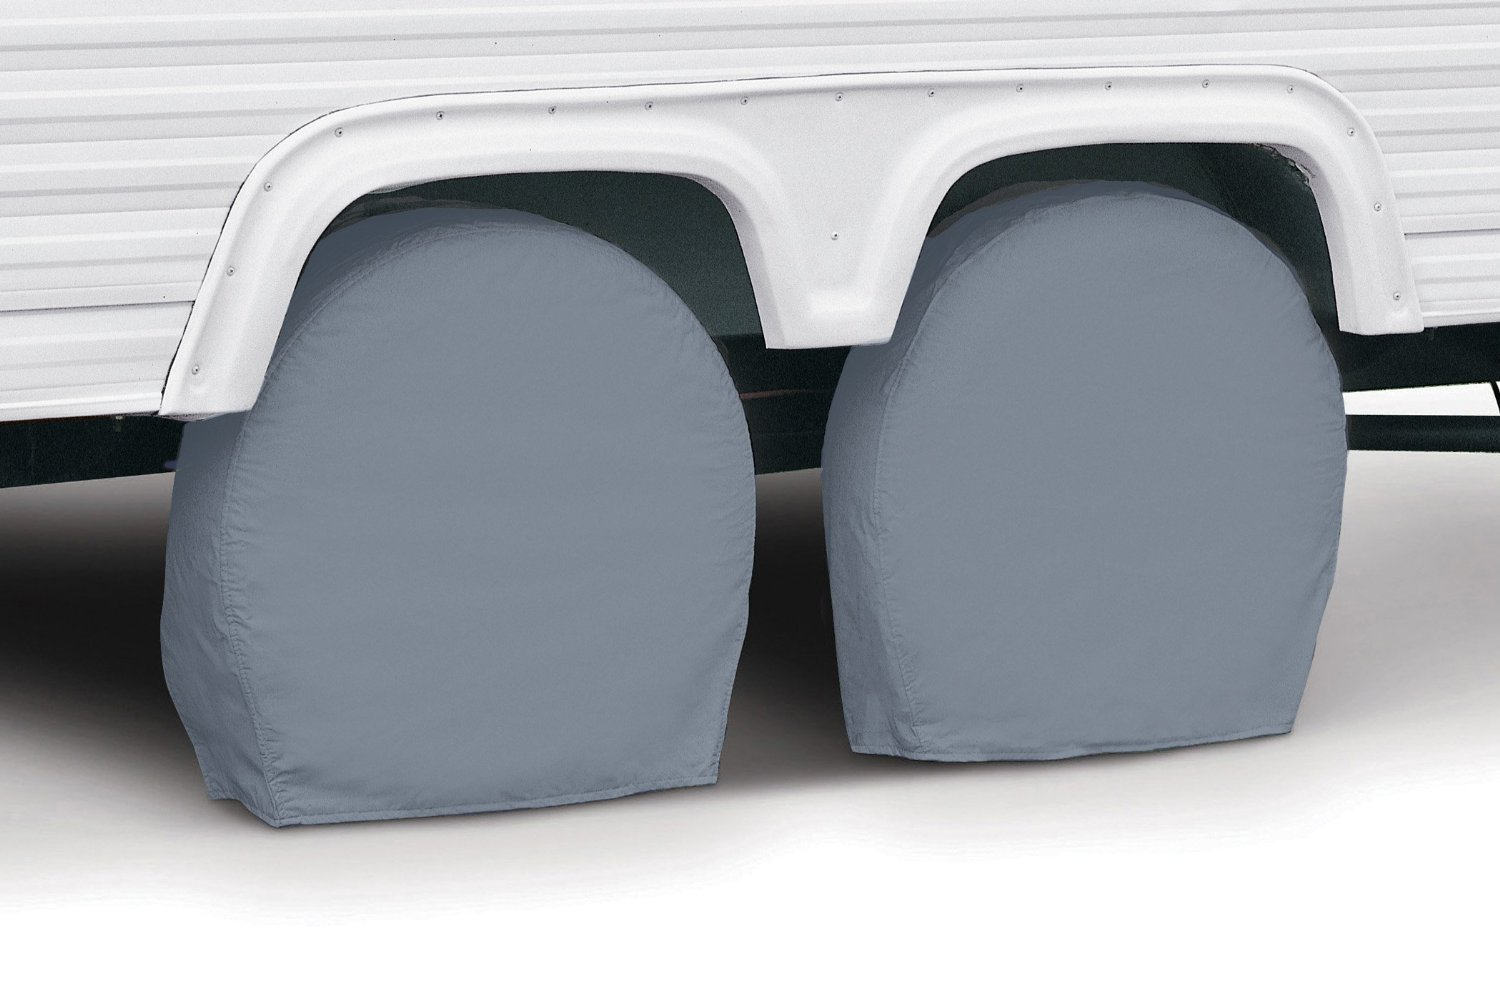 Classic Accessories 80-098-301001-00 RV Wheel Cover, Pair, Grey, 19' - 22' Wheel Diameter 19 - 22 Wheel Diameter